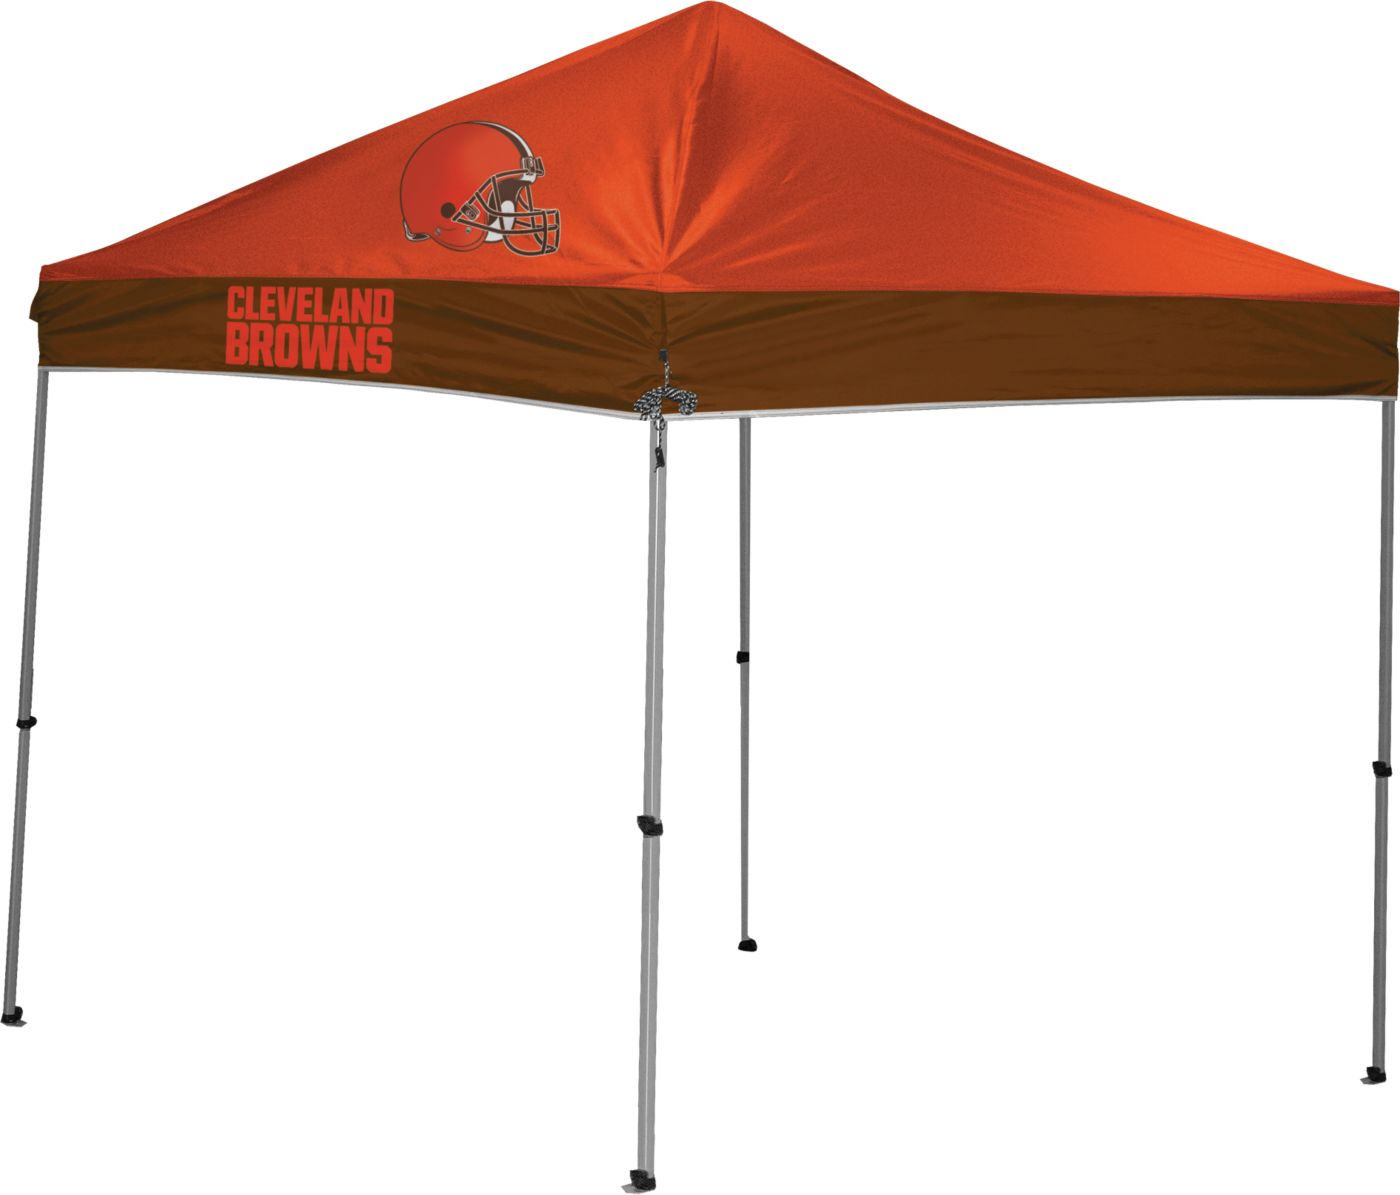 Rawlings Cleveland Browns 9'x9' Canopy Tent